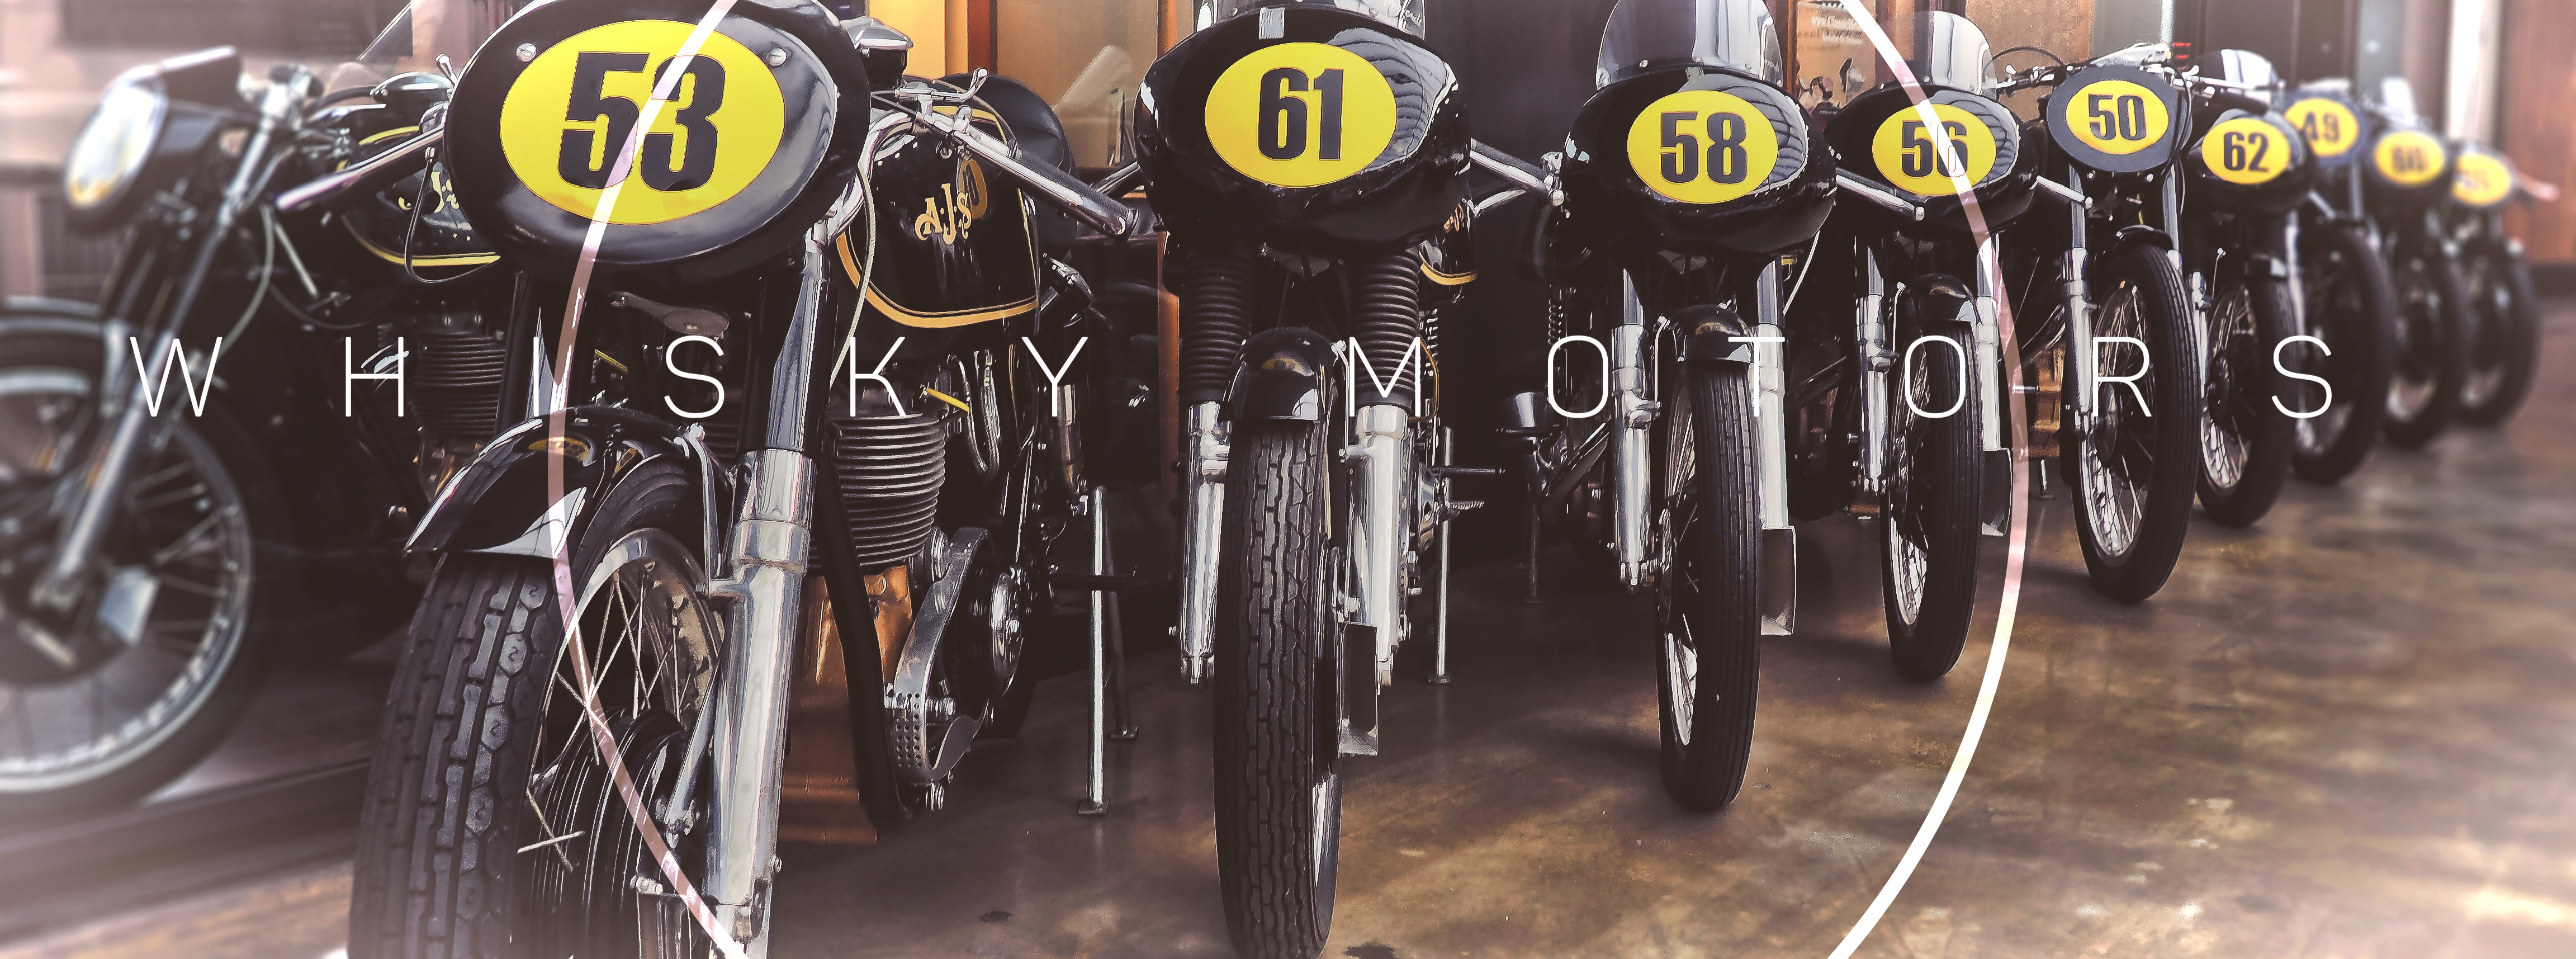 Salon motocykli Whisky Motors